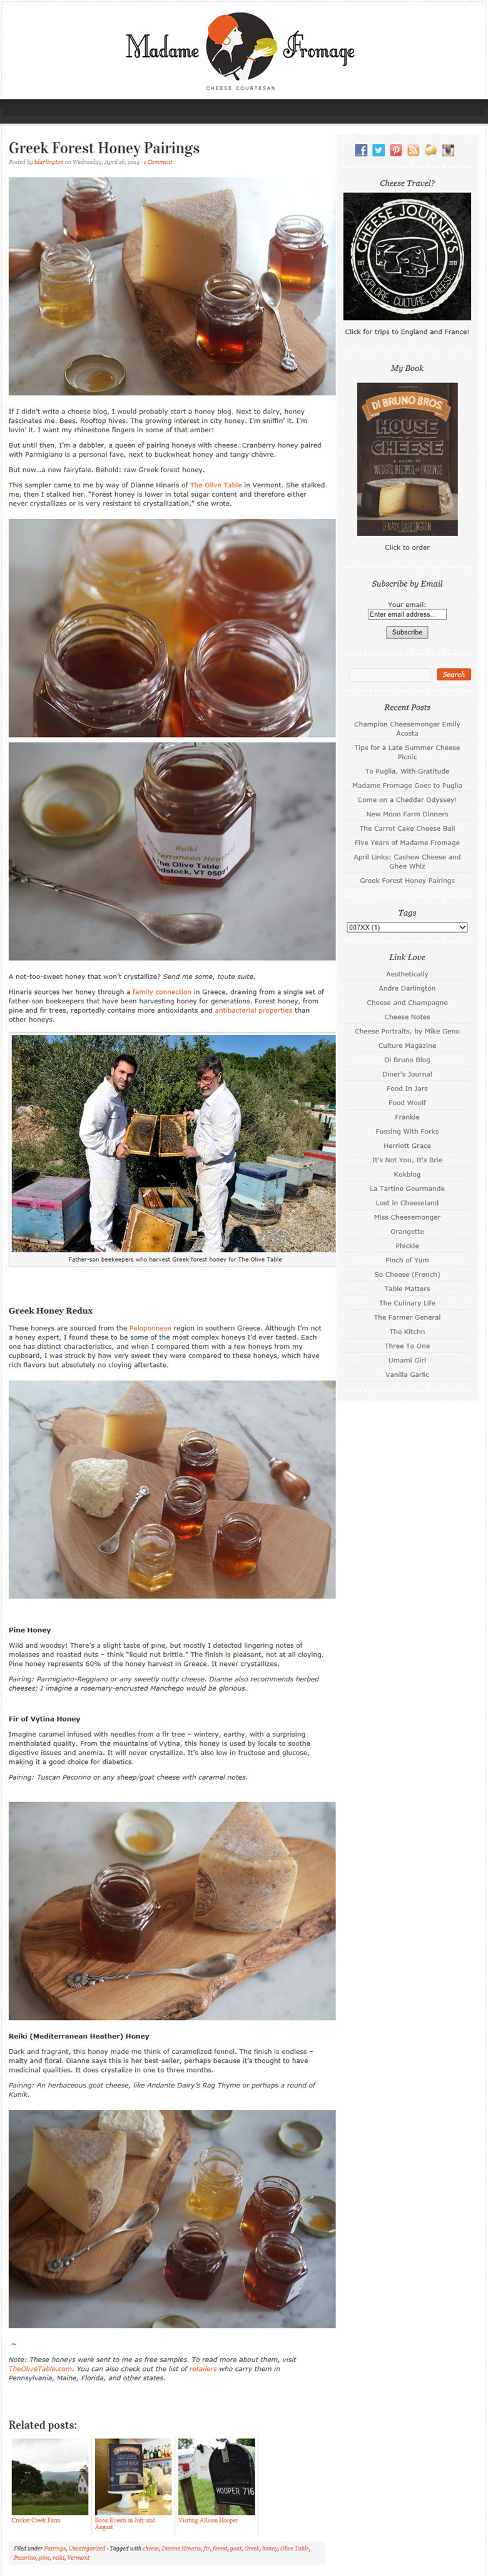 Olive-Table-Madame-Fromage-Article